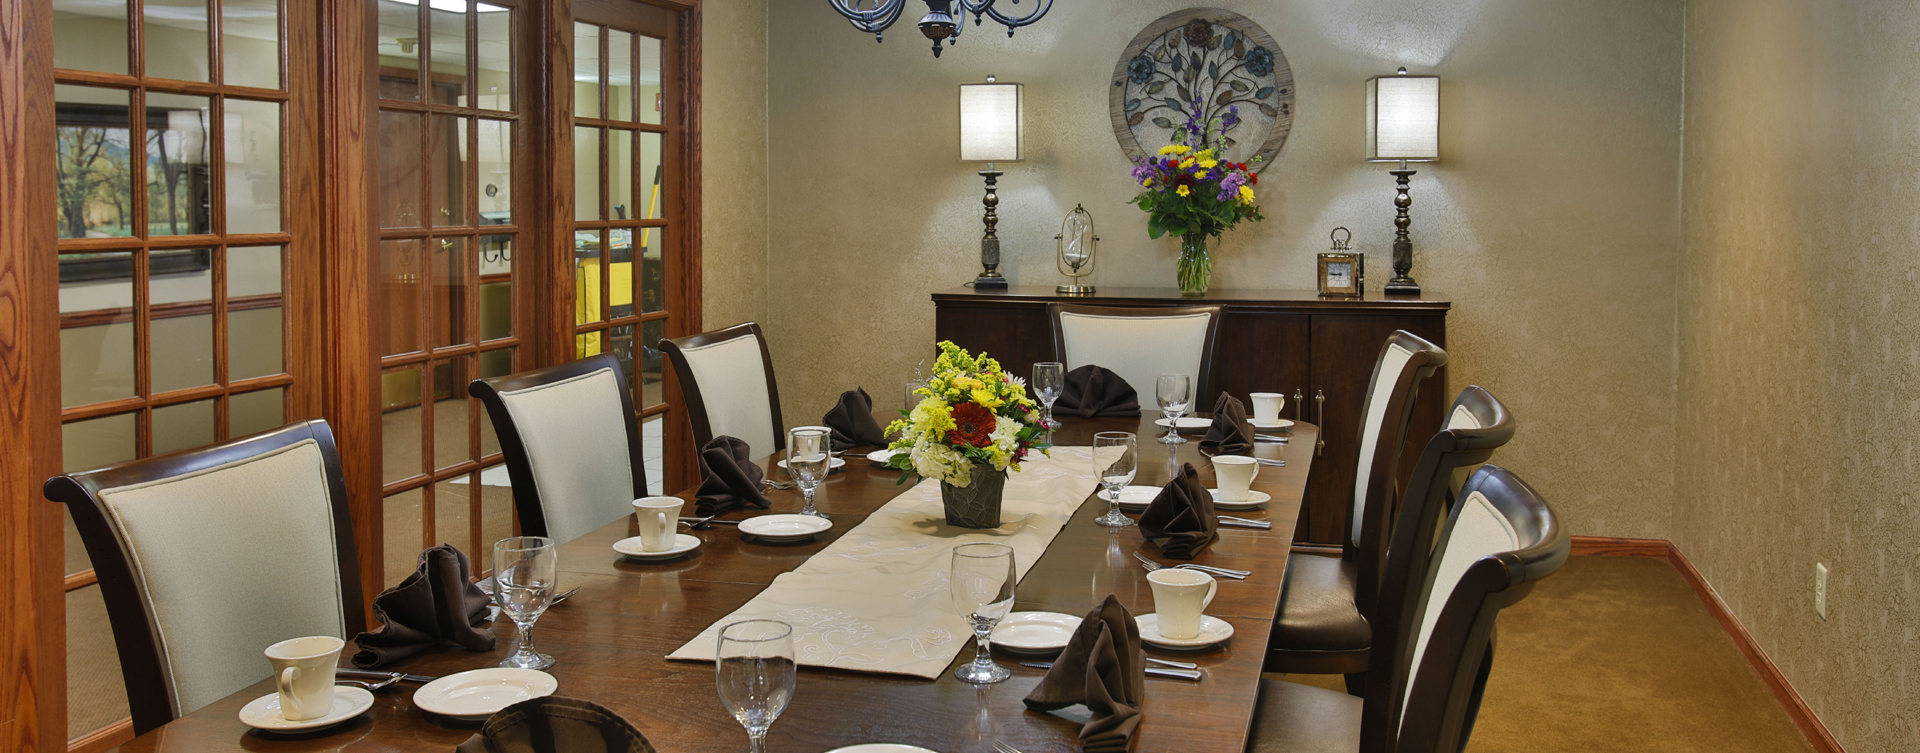 Celebrate special occasions in the private dining room at Bickford of Bloomington